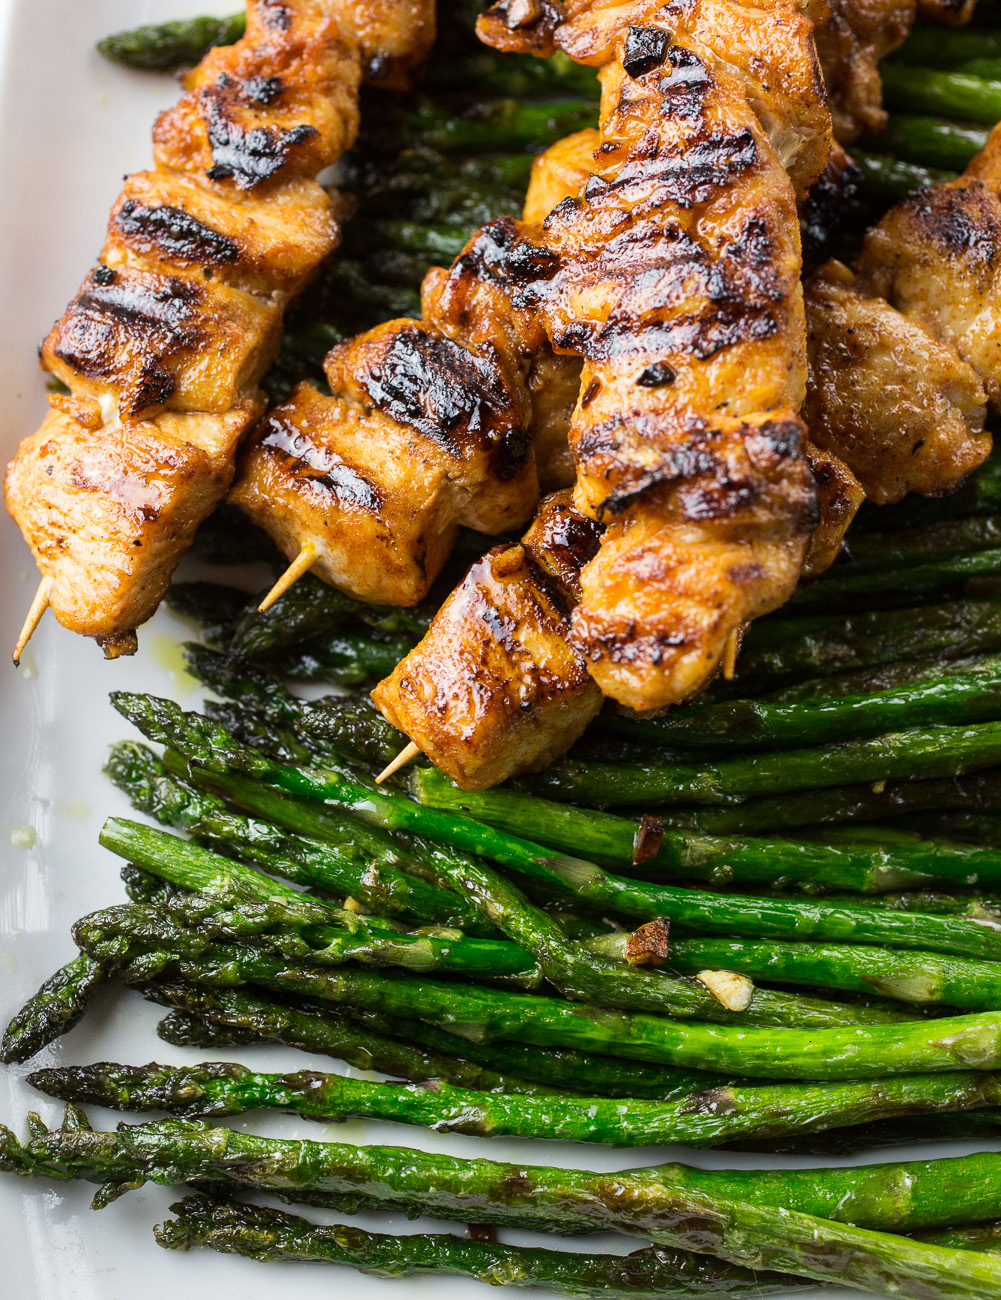 Spicy chicken skewers with roasted asparagus | thegirllovestoeat.com